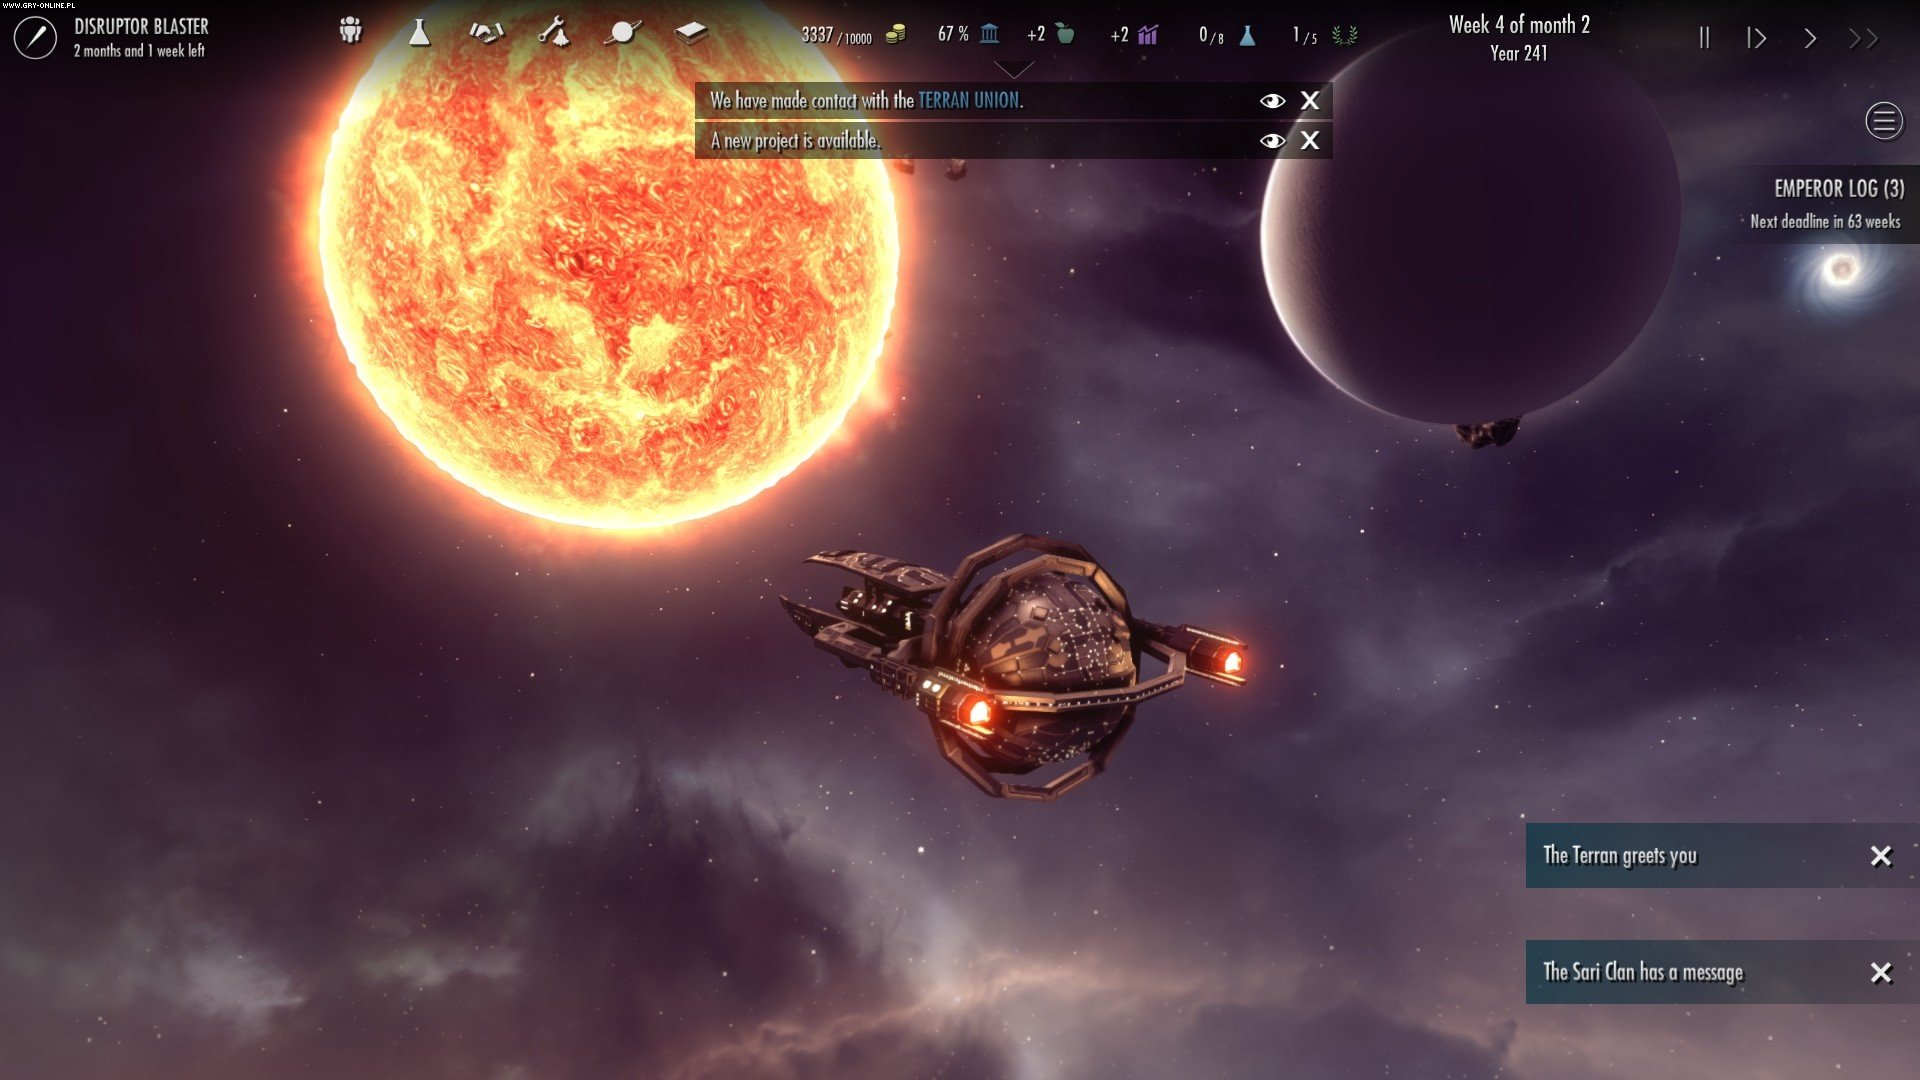 Dawn of Andromeda PC Games Image 9/24, Grey Wolf Entertainment, Iceberg Interactive